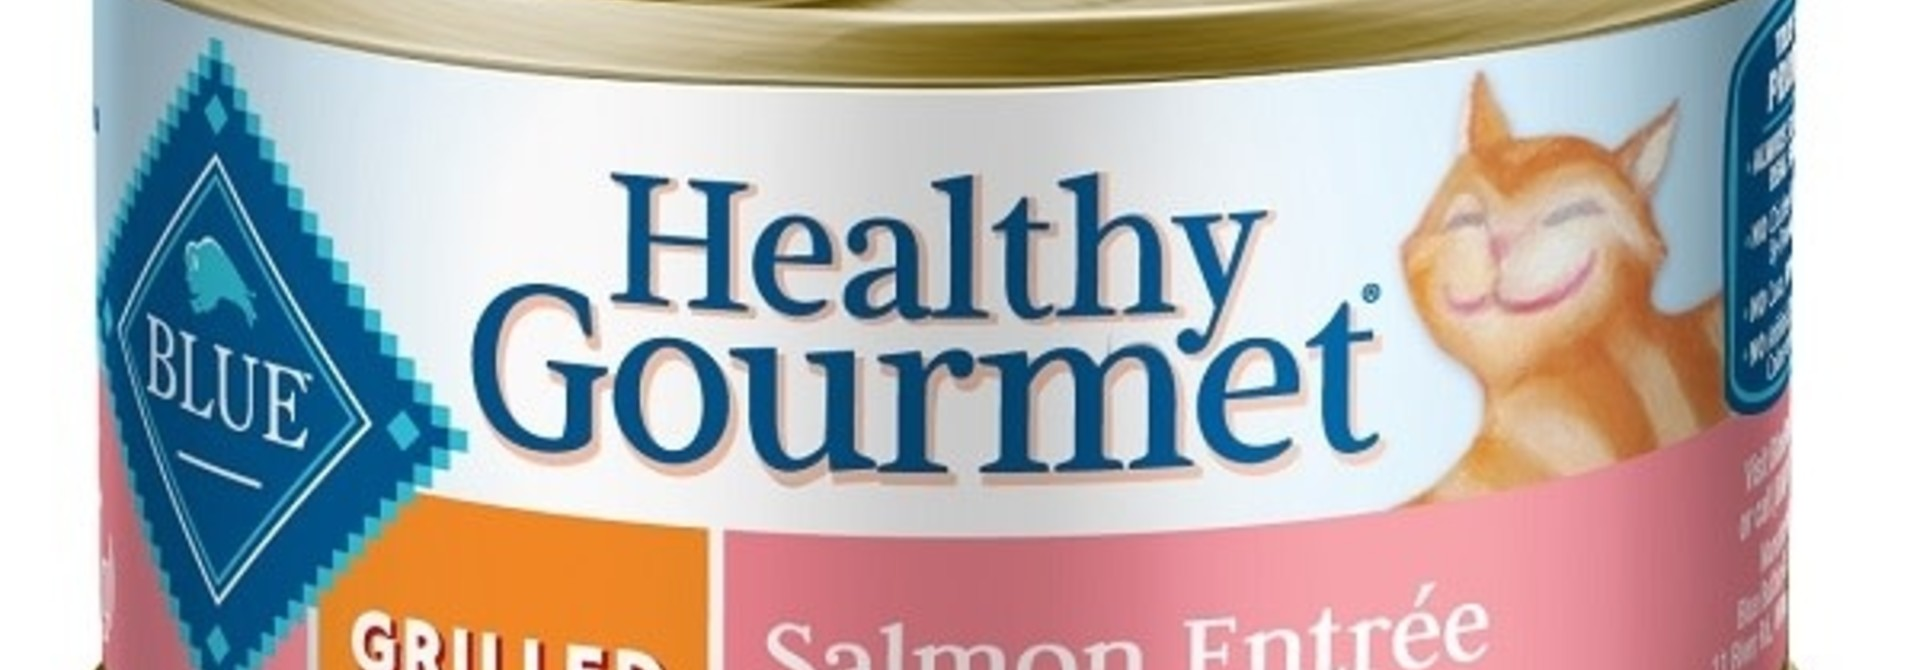 Blue-Cat-Canned Grilled Salmon 3oz